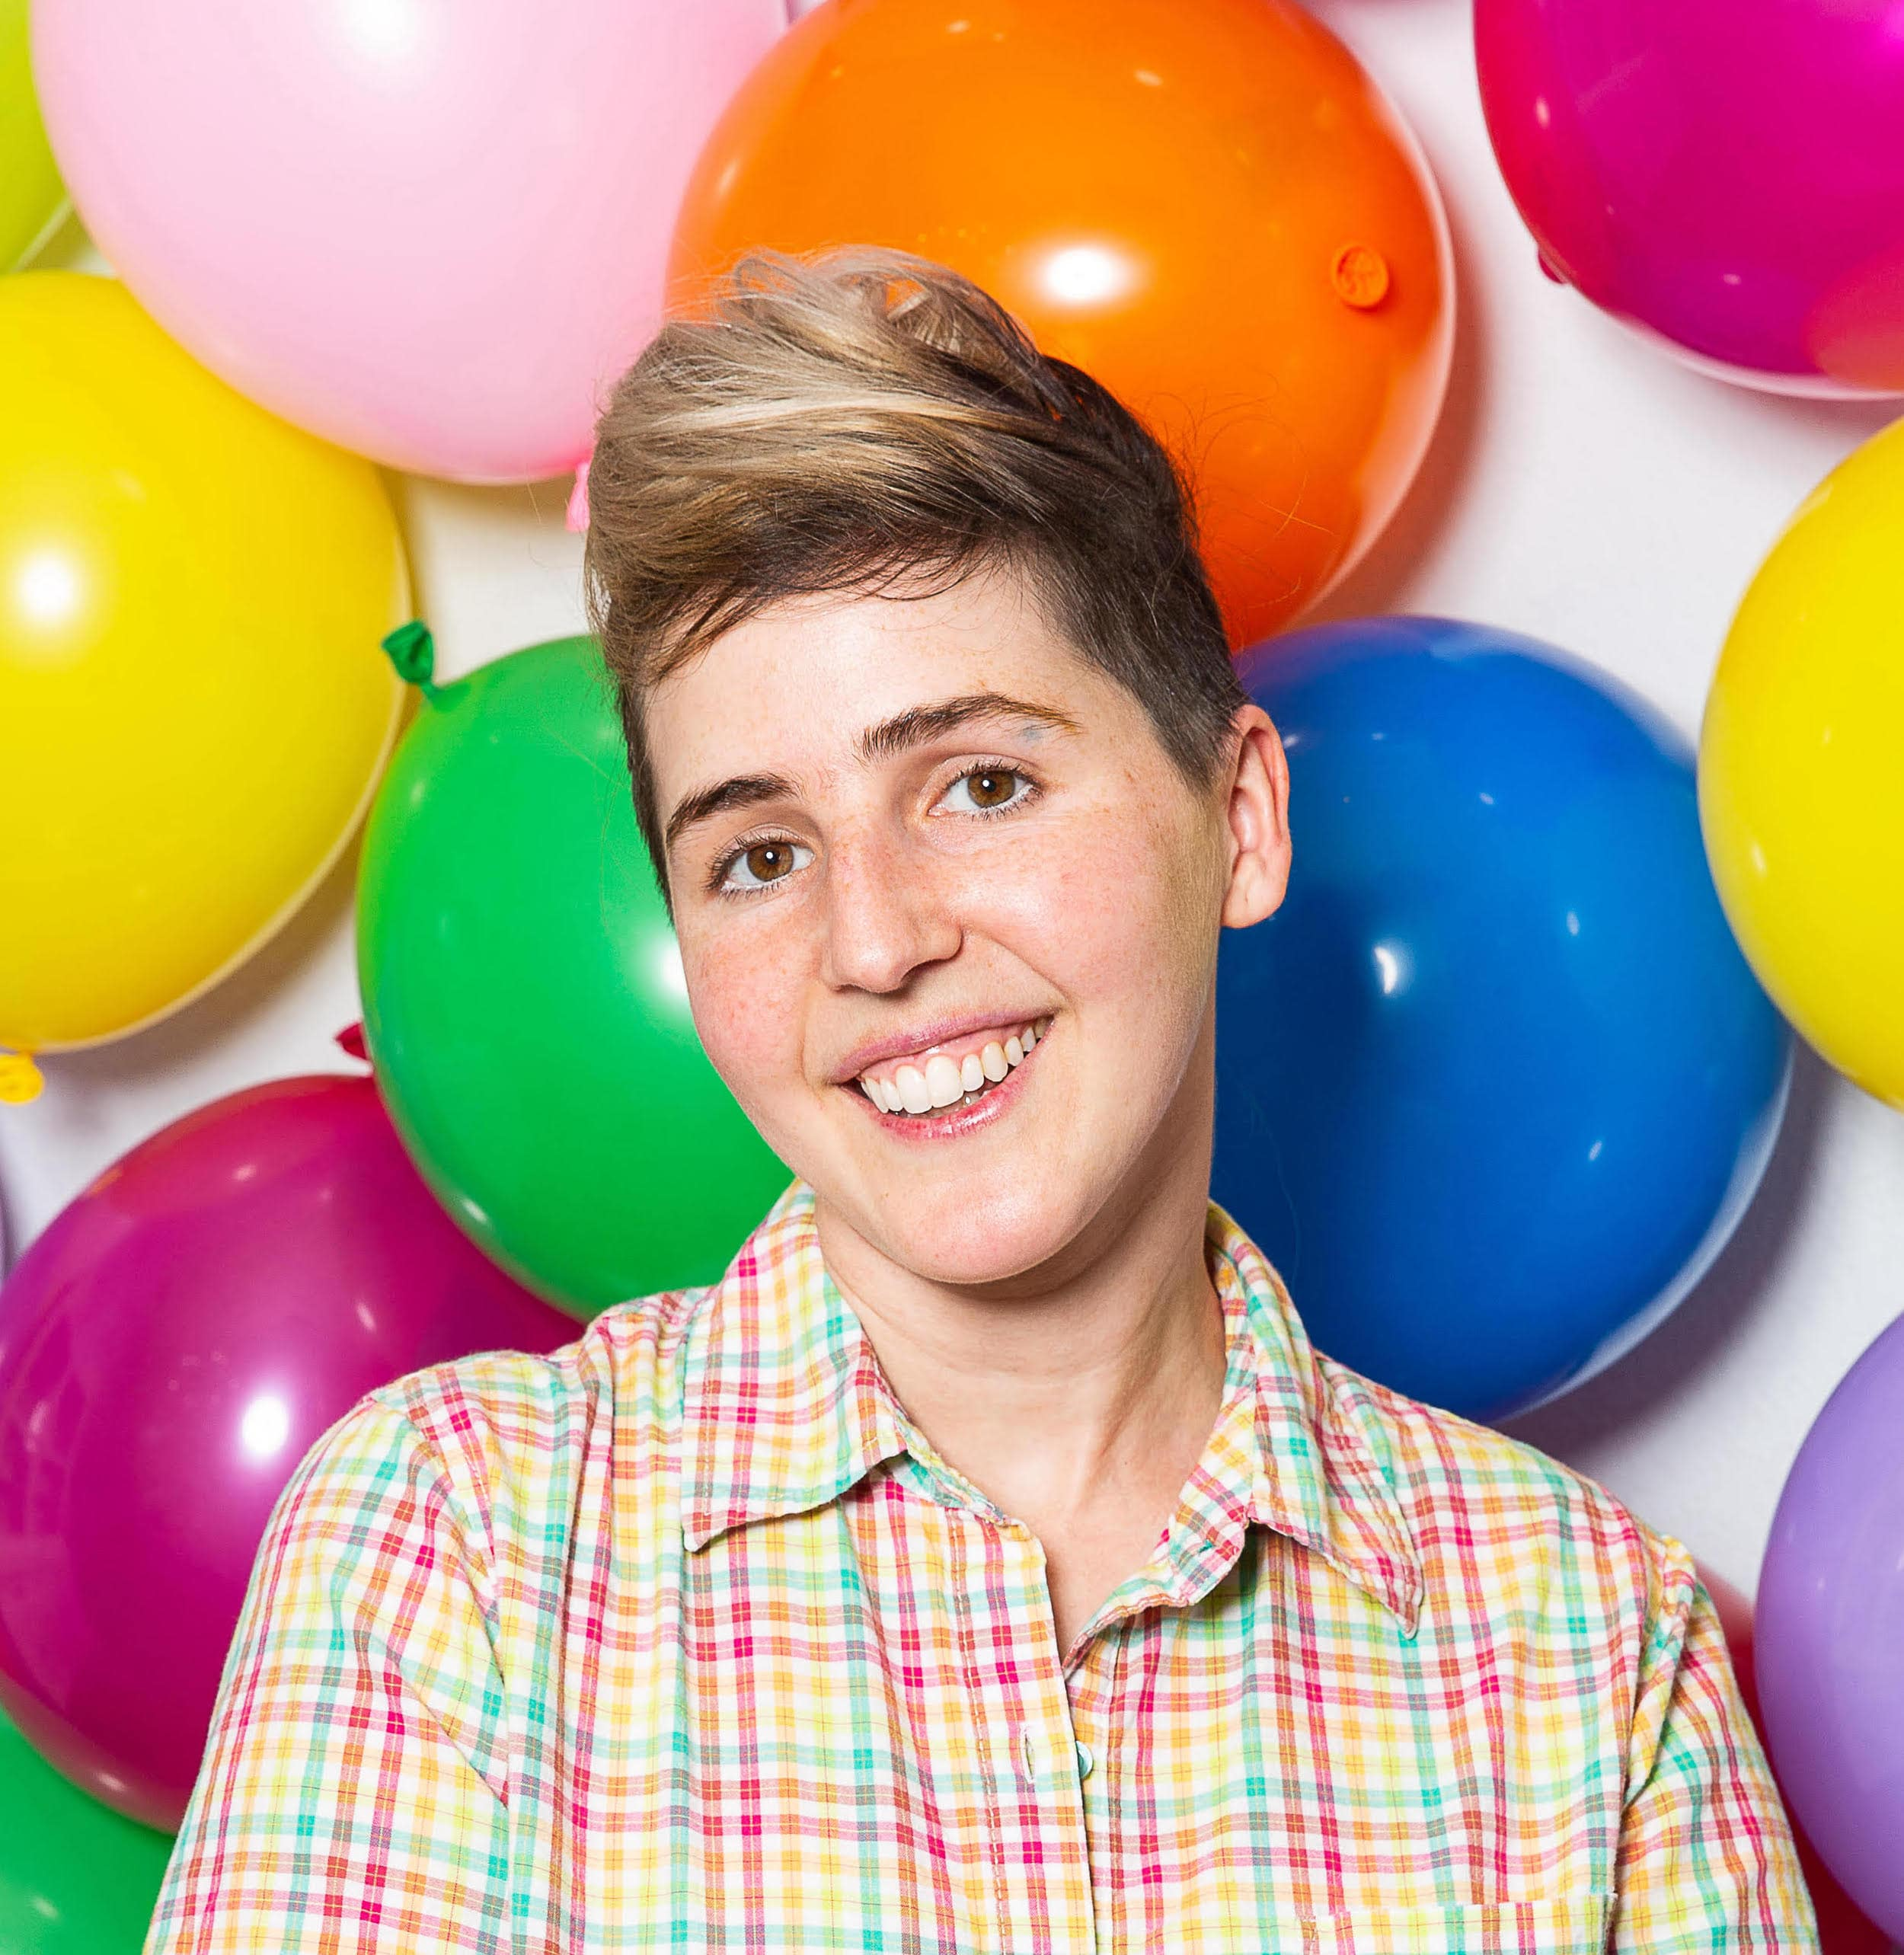 Abi smiles in a brightly colored plaid collared shirt standing in front of a wall of colorful balloons